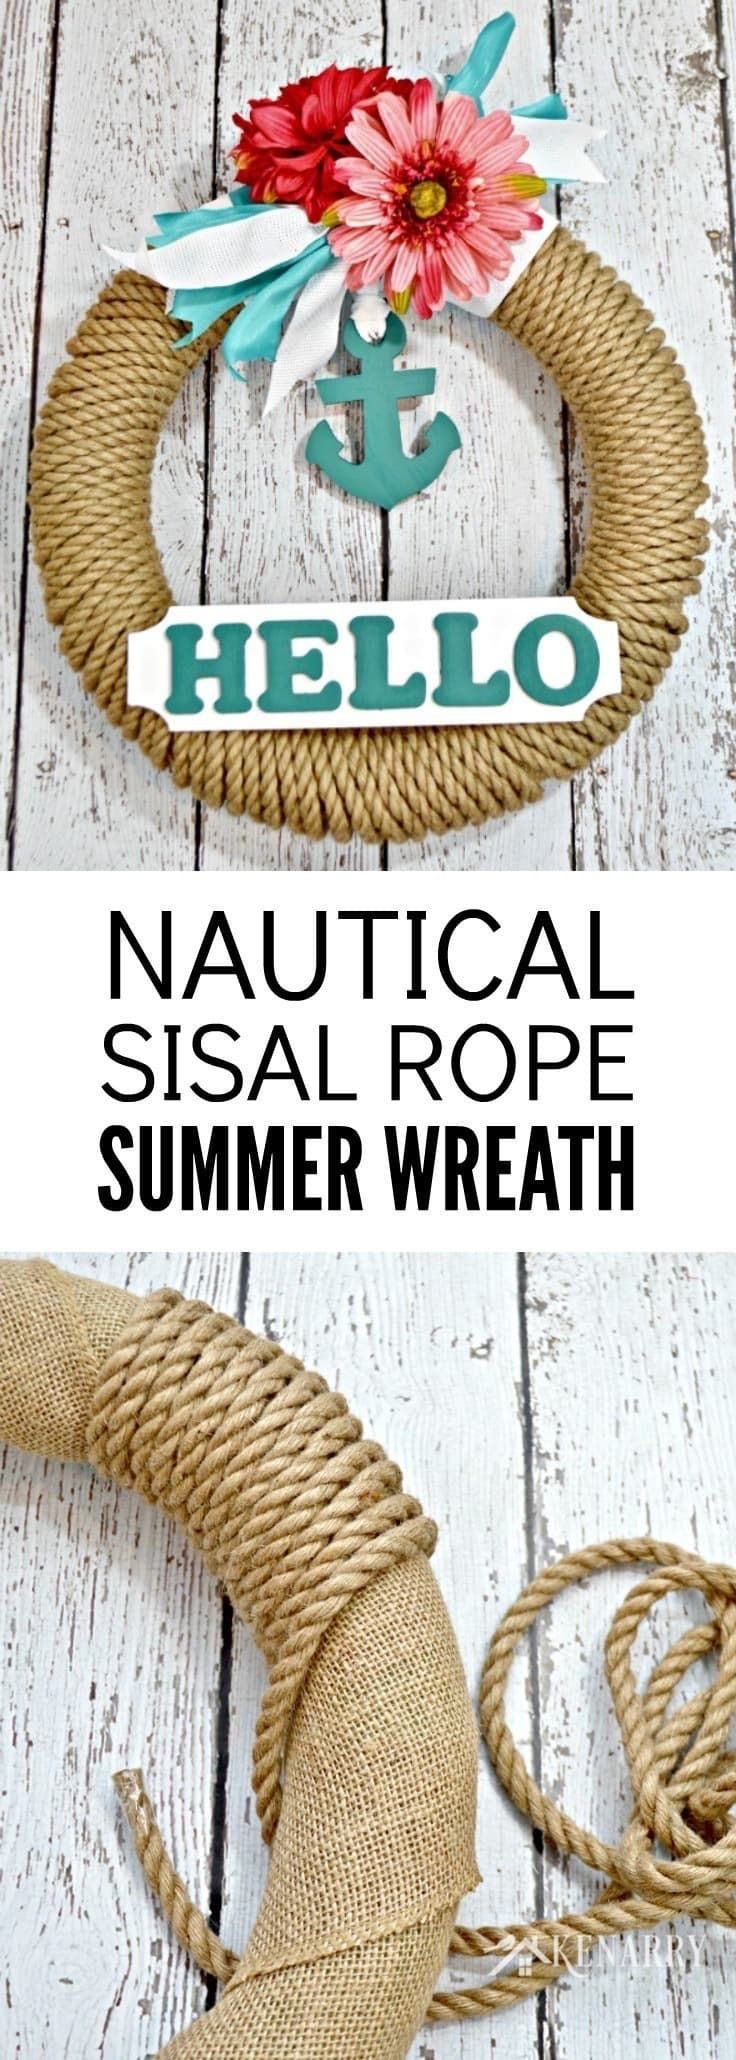 If you love to decorate your home or cottage with coastal decor, this Nautical Wreath using sisal rope and an anchor is an easy must-make craft idea for summer.